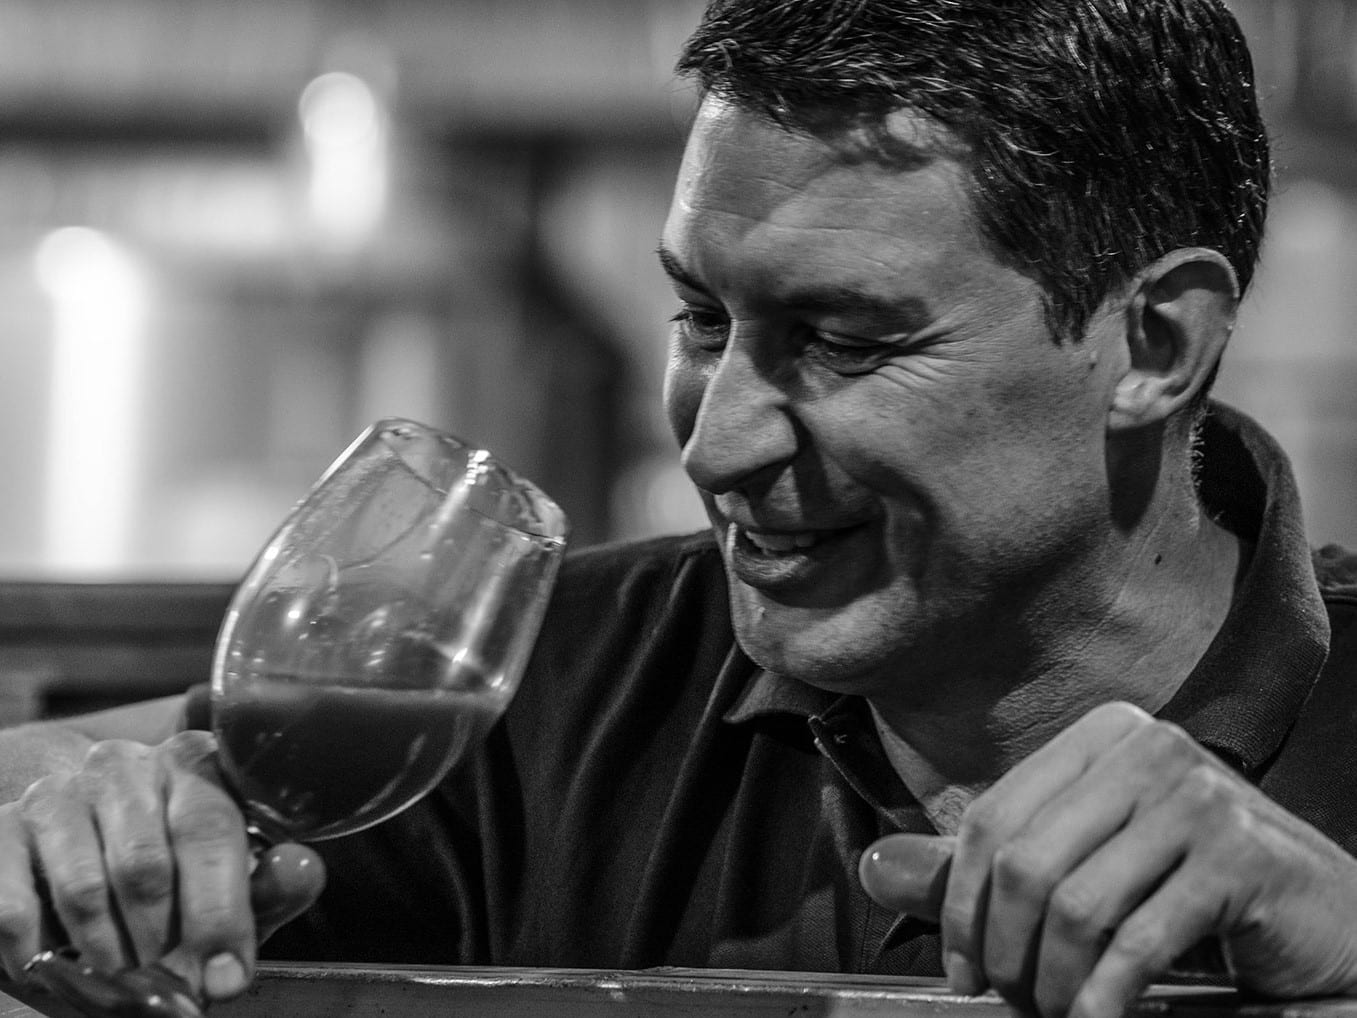 Black and white photo of Scott tasting a wine